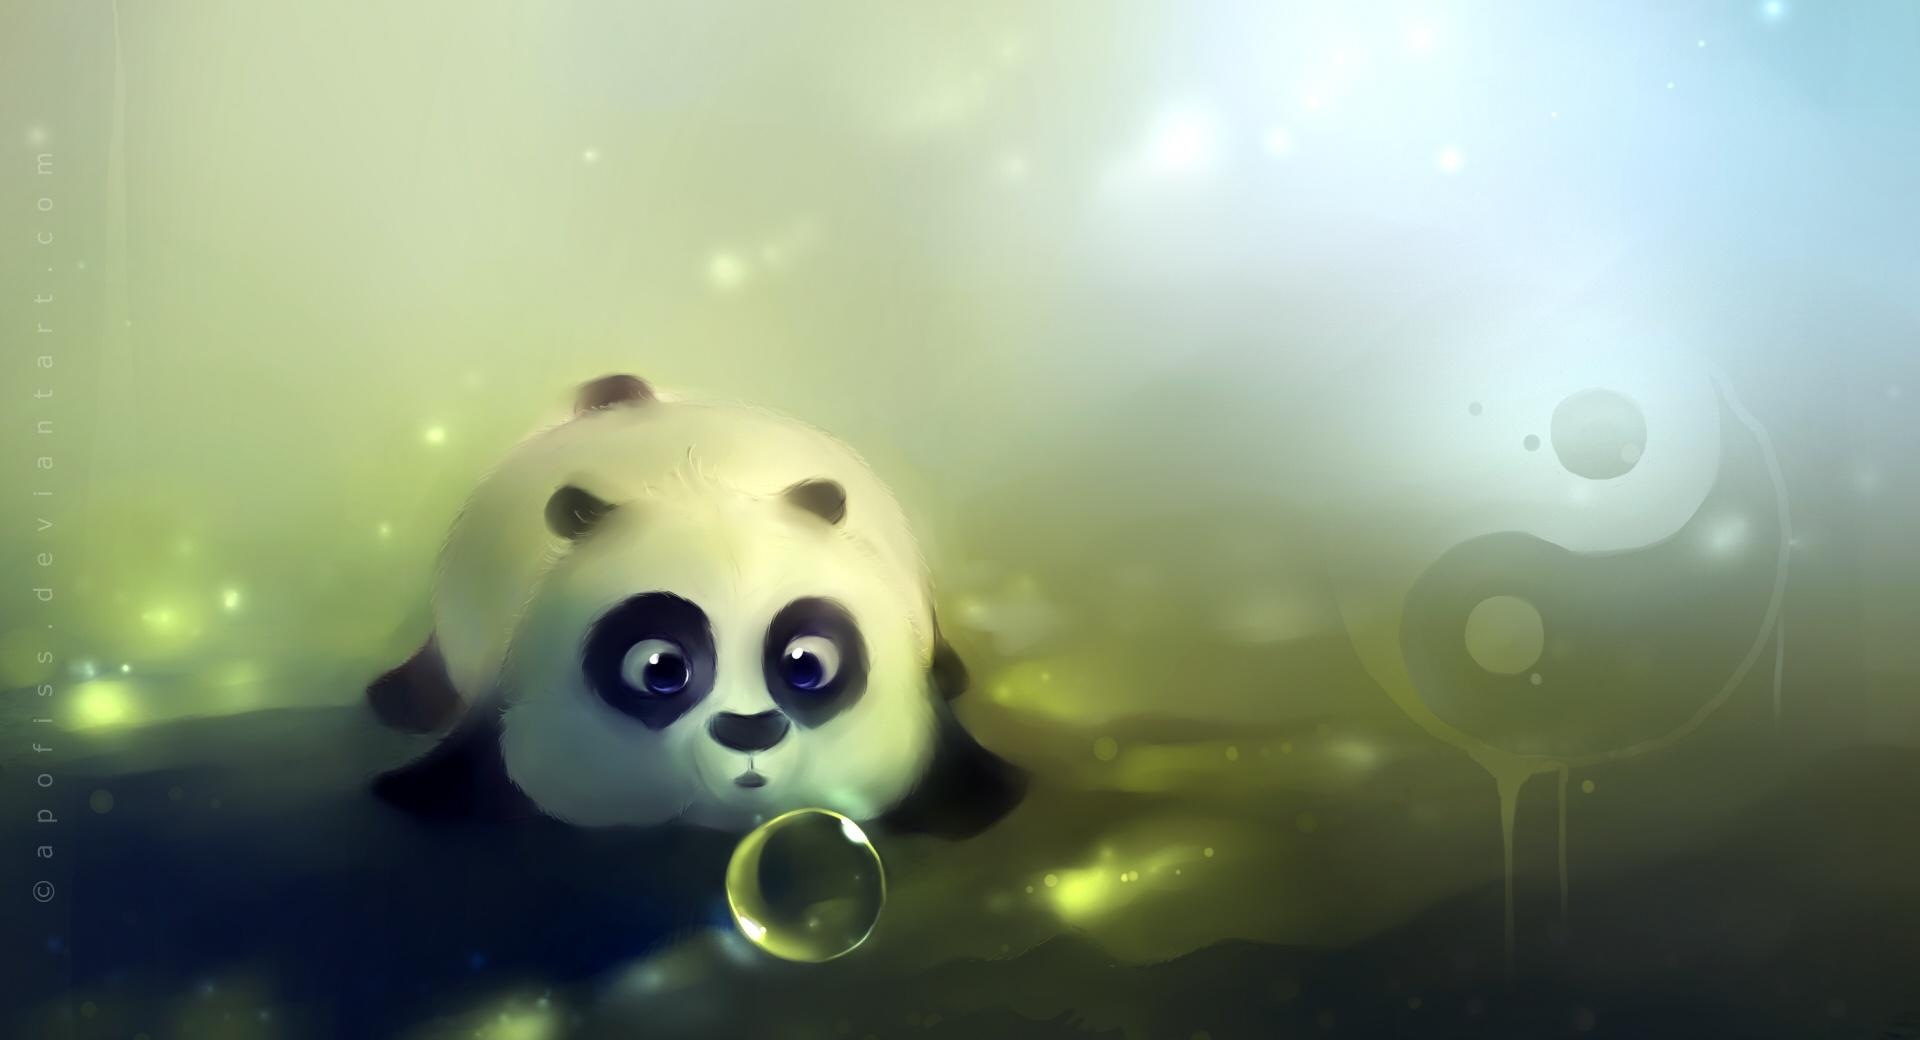 Panda Loves Bubbles wallpapers HD quality